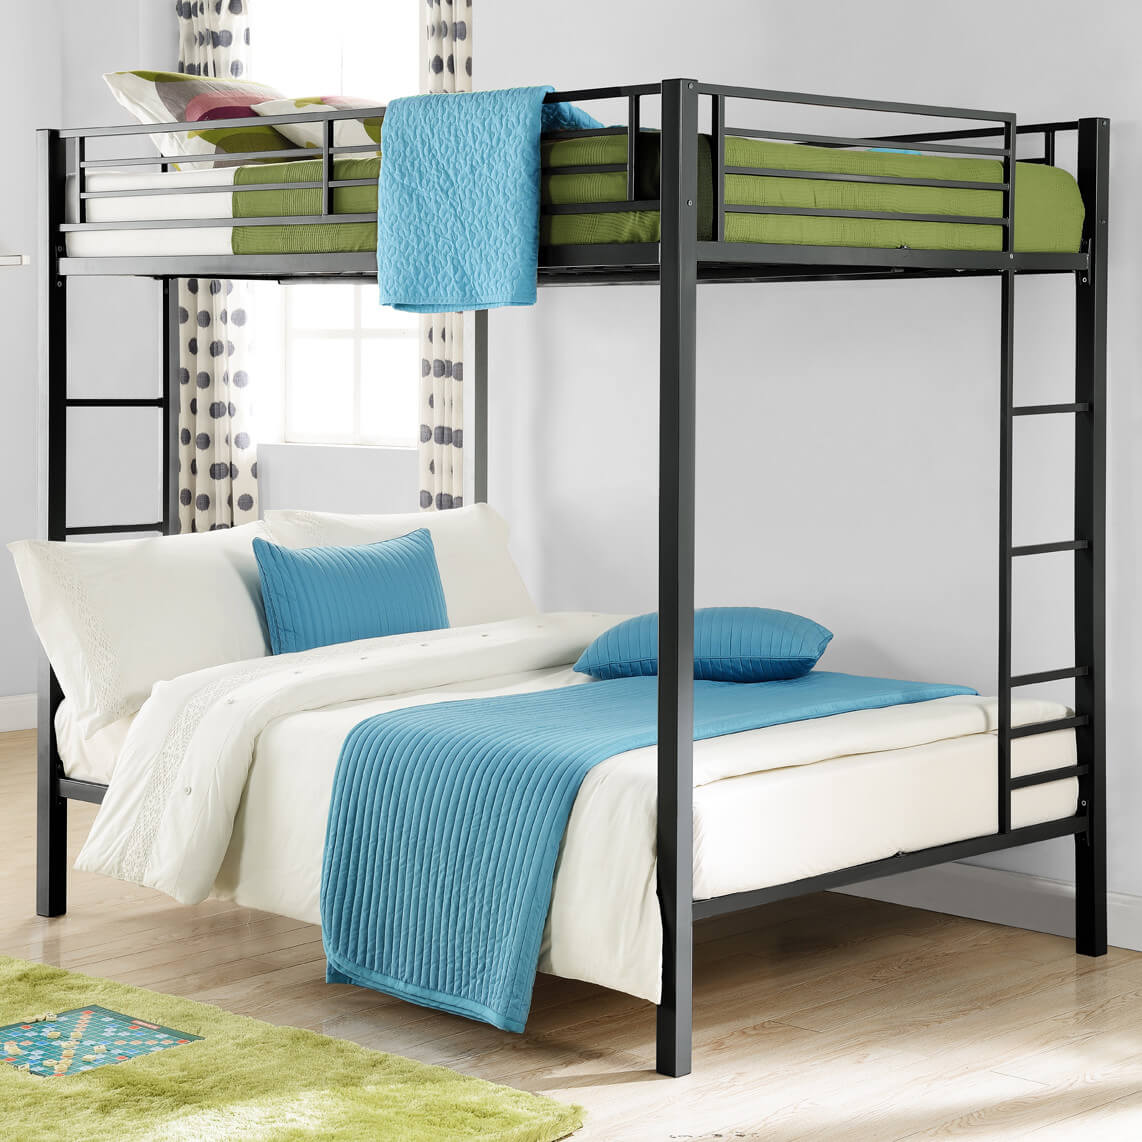 Metal frames, in contrast to their wooden brethren, are less commonplace. Metal allows for a lighter weight build, often granting a more open and airy structure to the bed. This can make assembly and moving easier.